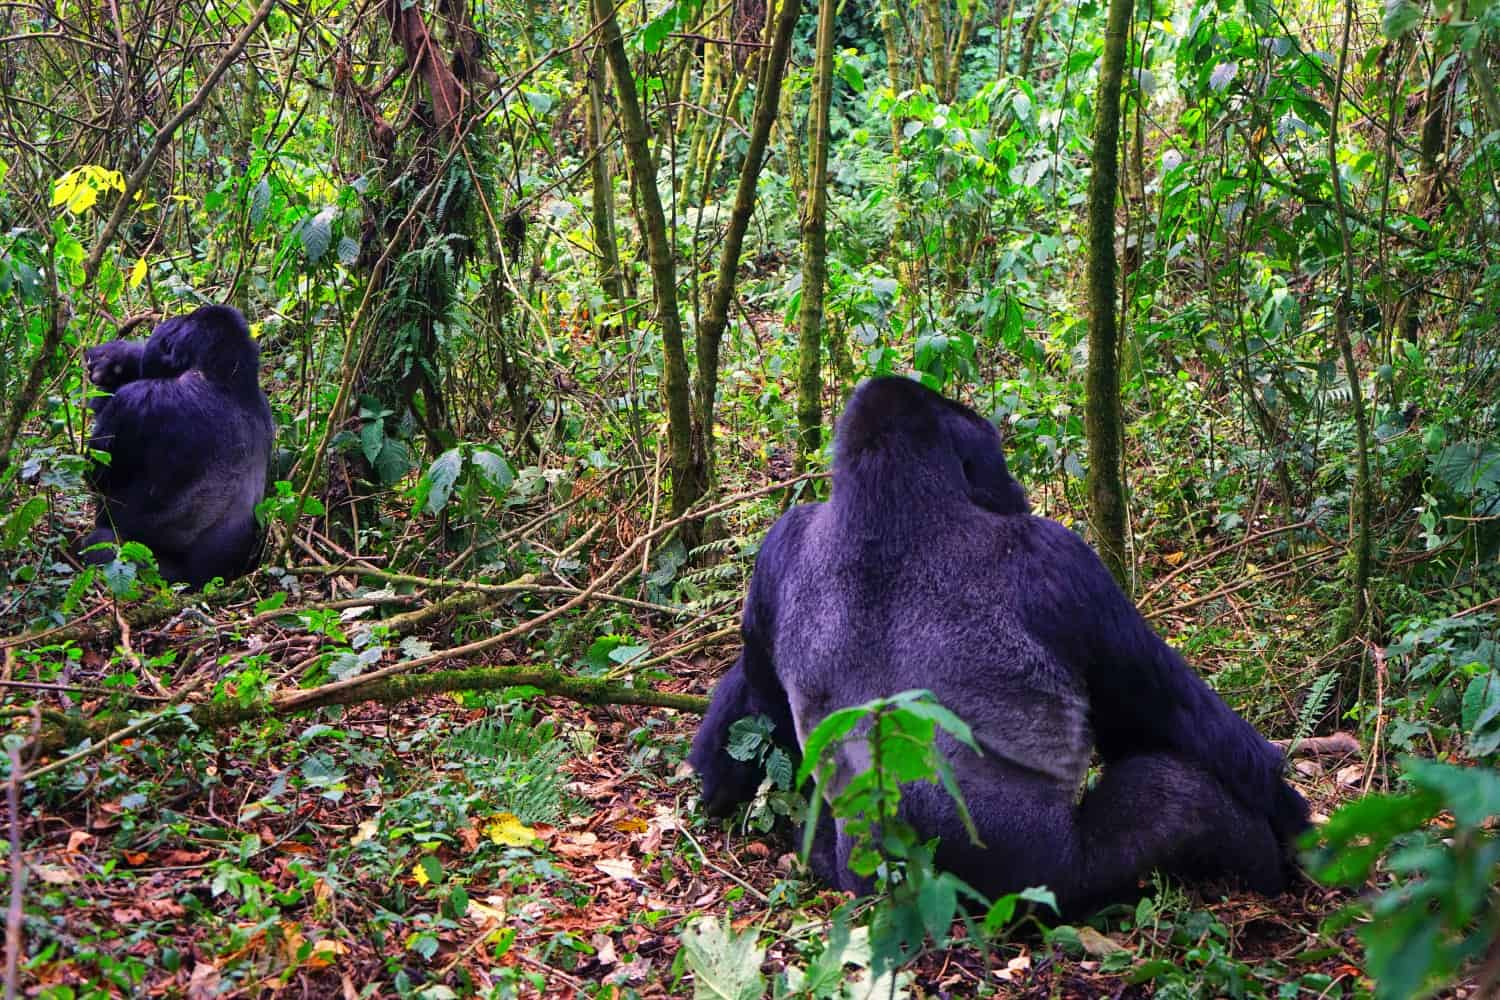 Sulking gorillas in the DRC